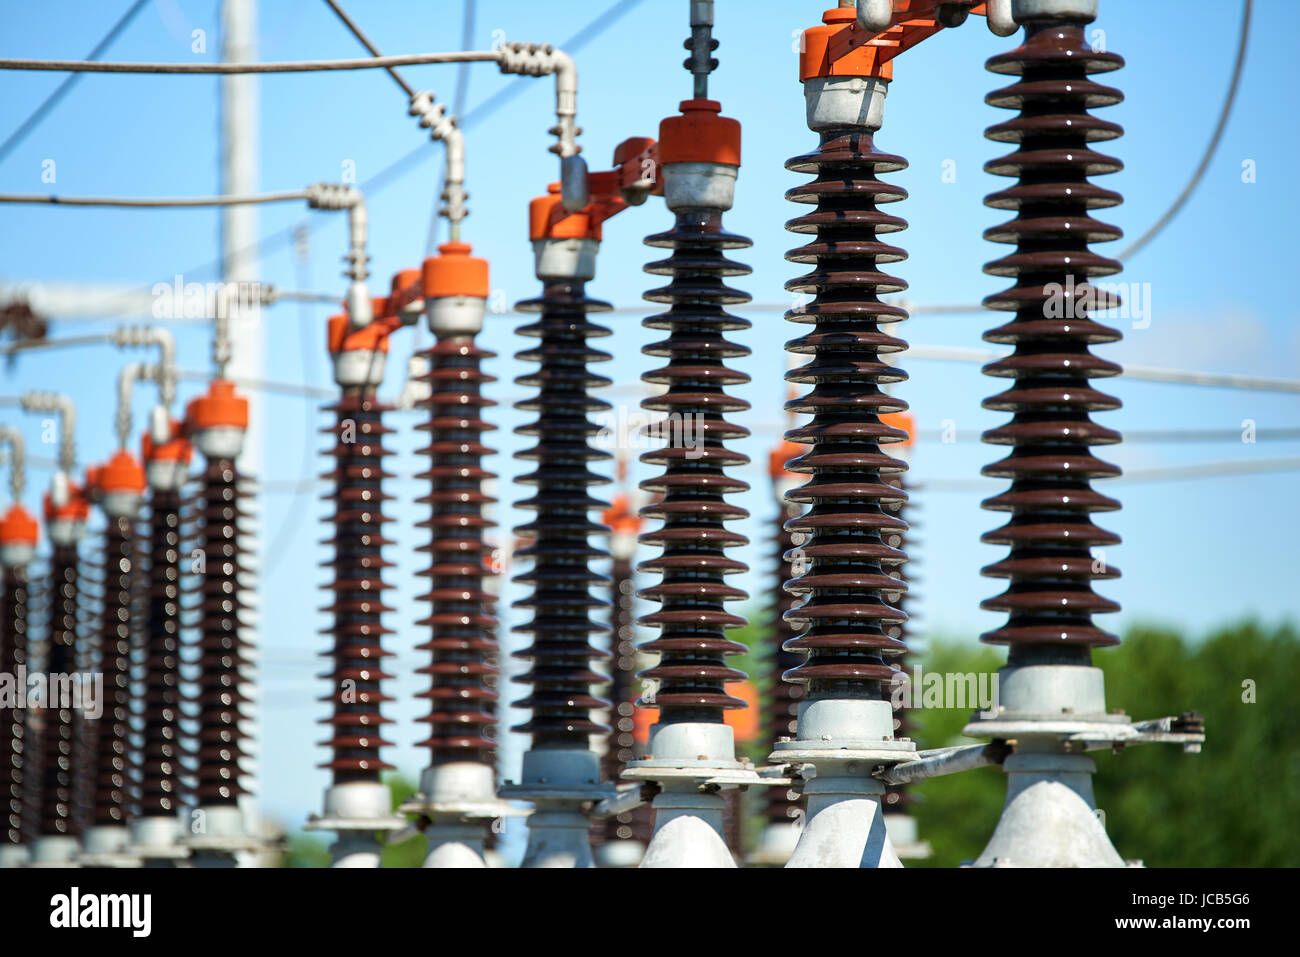 Electric power station  - Detail of High voltage power transformer in substation - Stock Image